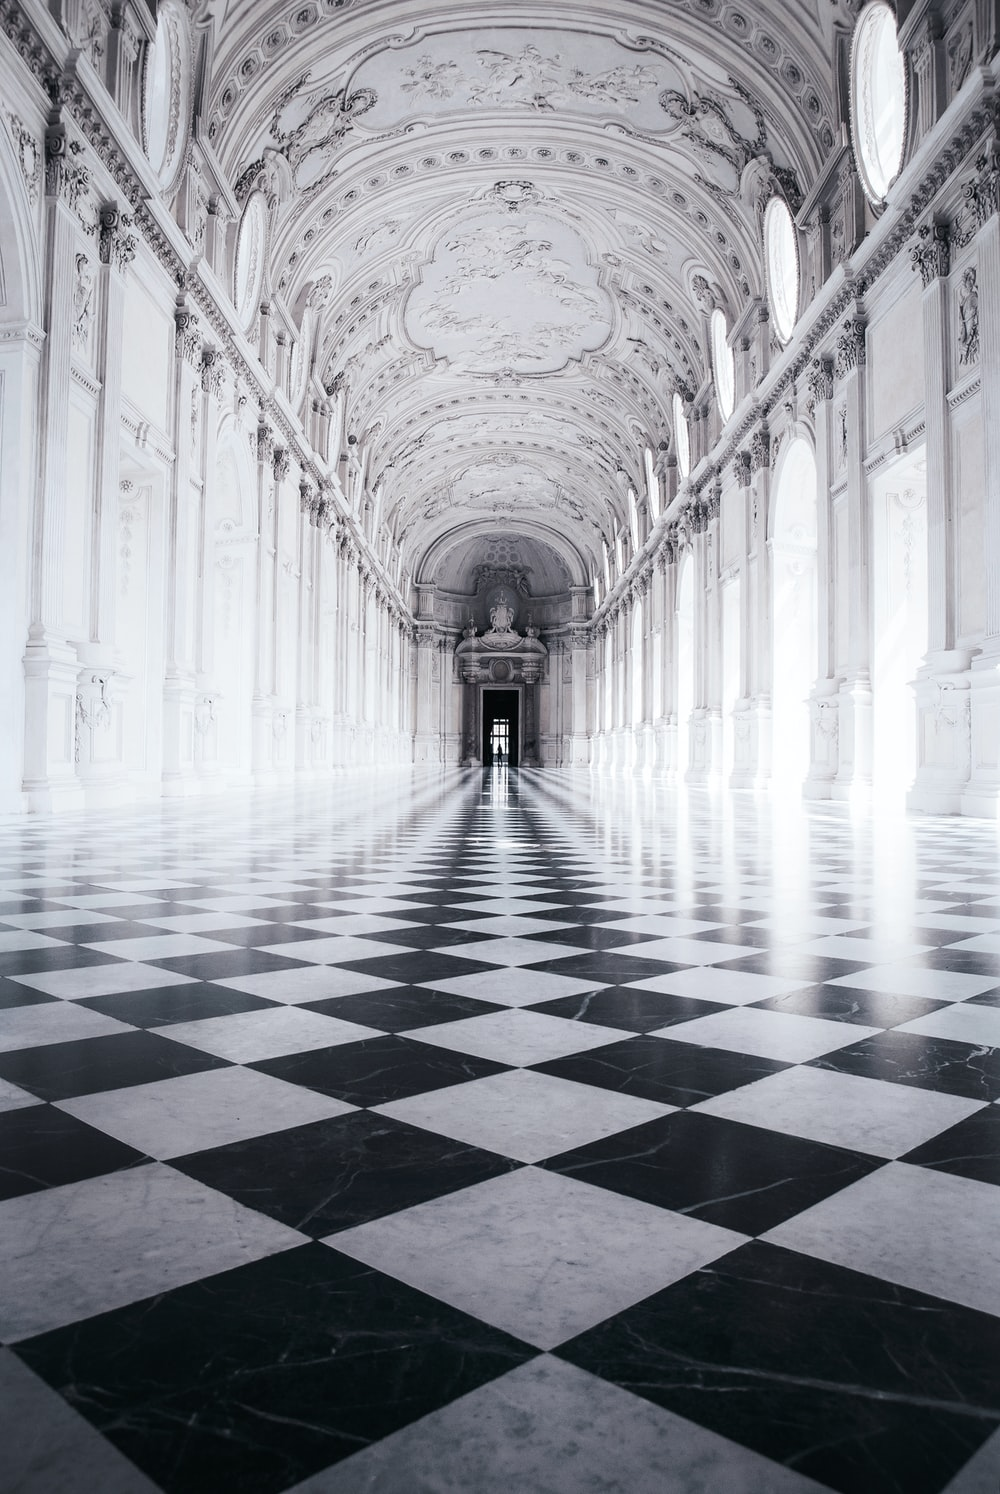 one-point perspective photography of building's interior